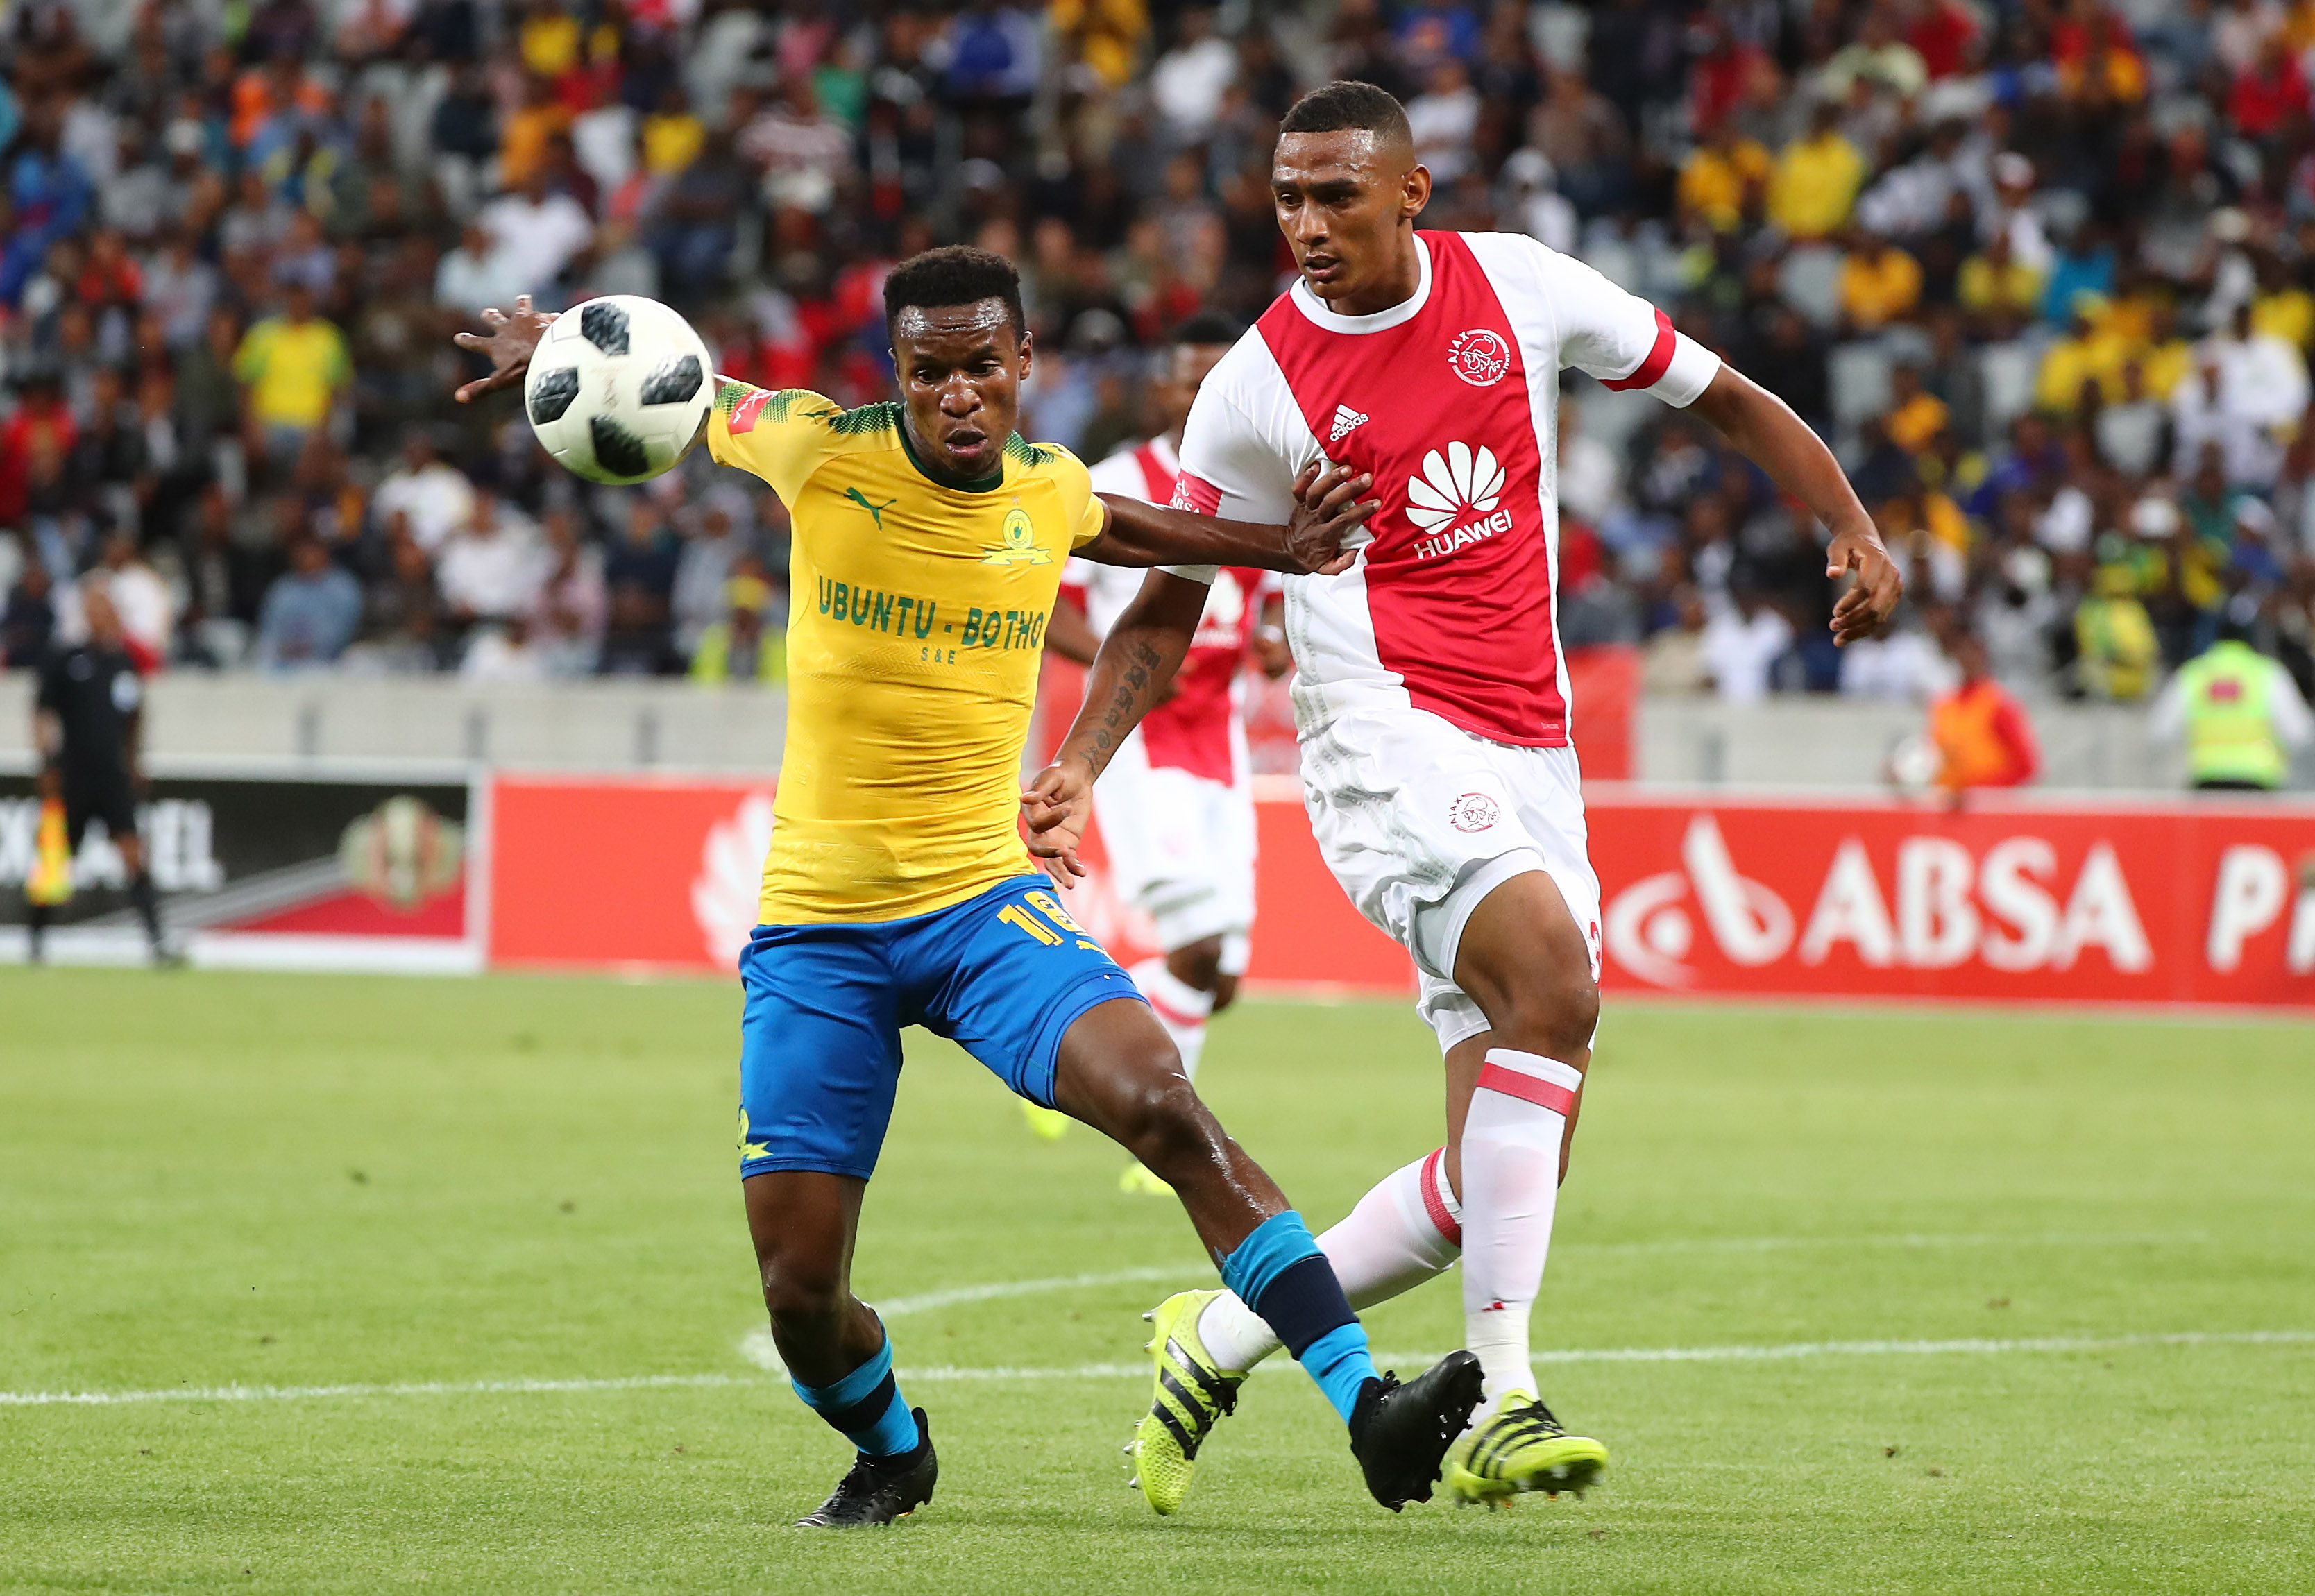 969990c9b64 Mamelodi Sundowns scored two goals in two minutes to move four points clear  atop the Absa Premiership standings